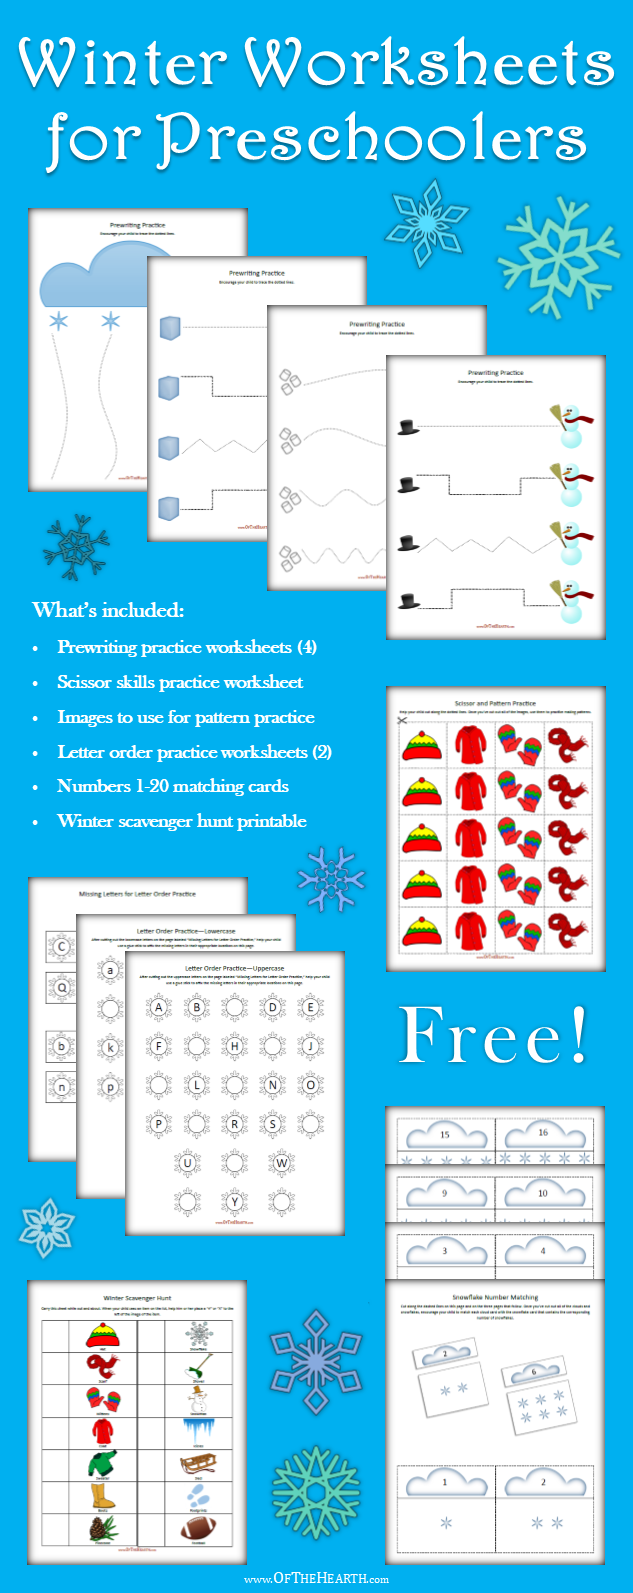 Engage your preschooler's curiosity with winter-themed worksheets and activities! Get started on the fun and learning by printing a free copy today.